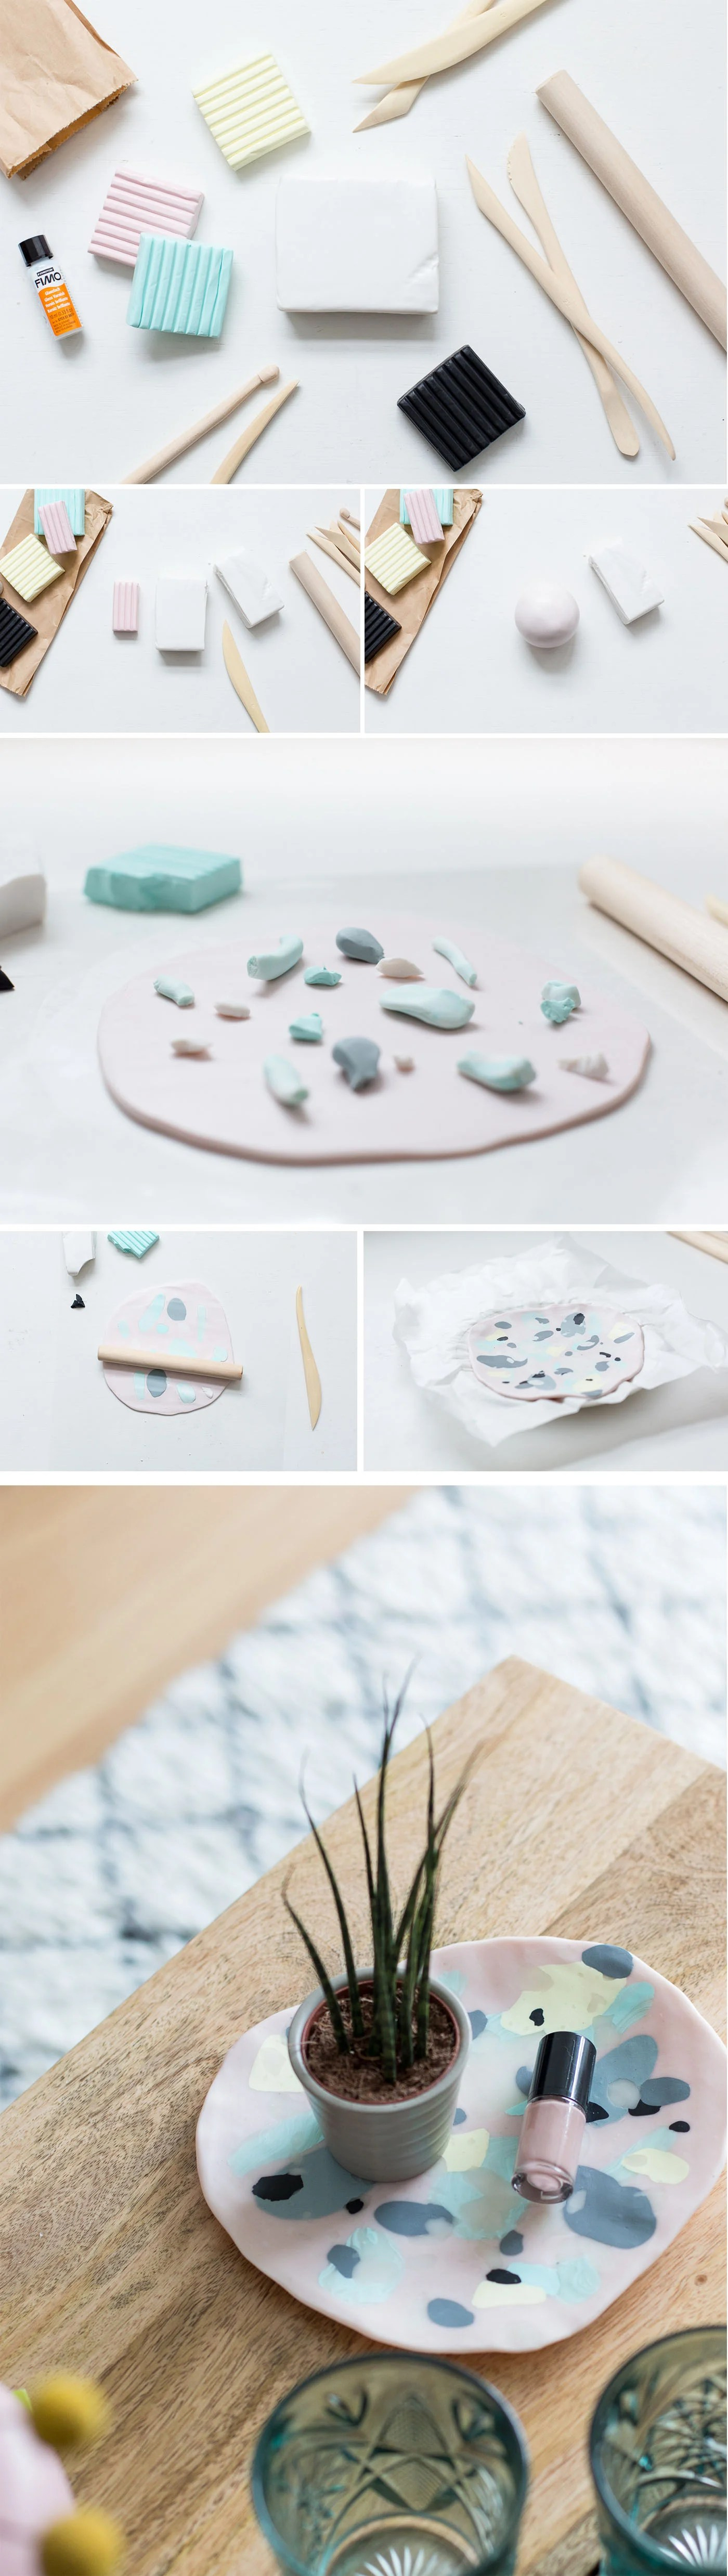 DIY Polymer Clay Coffee Table Plate